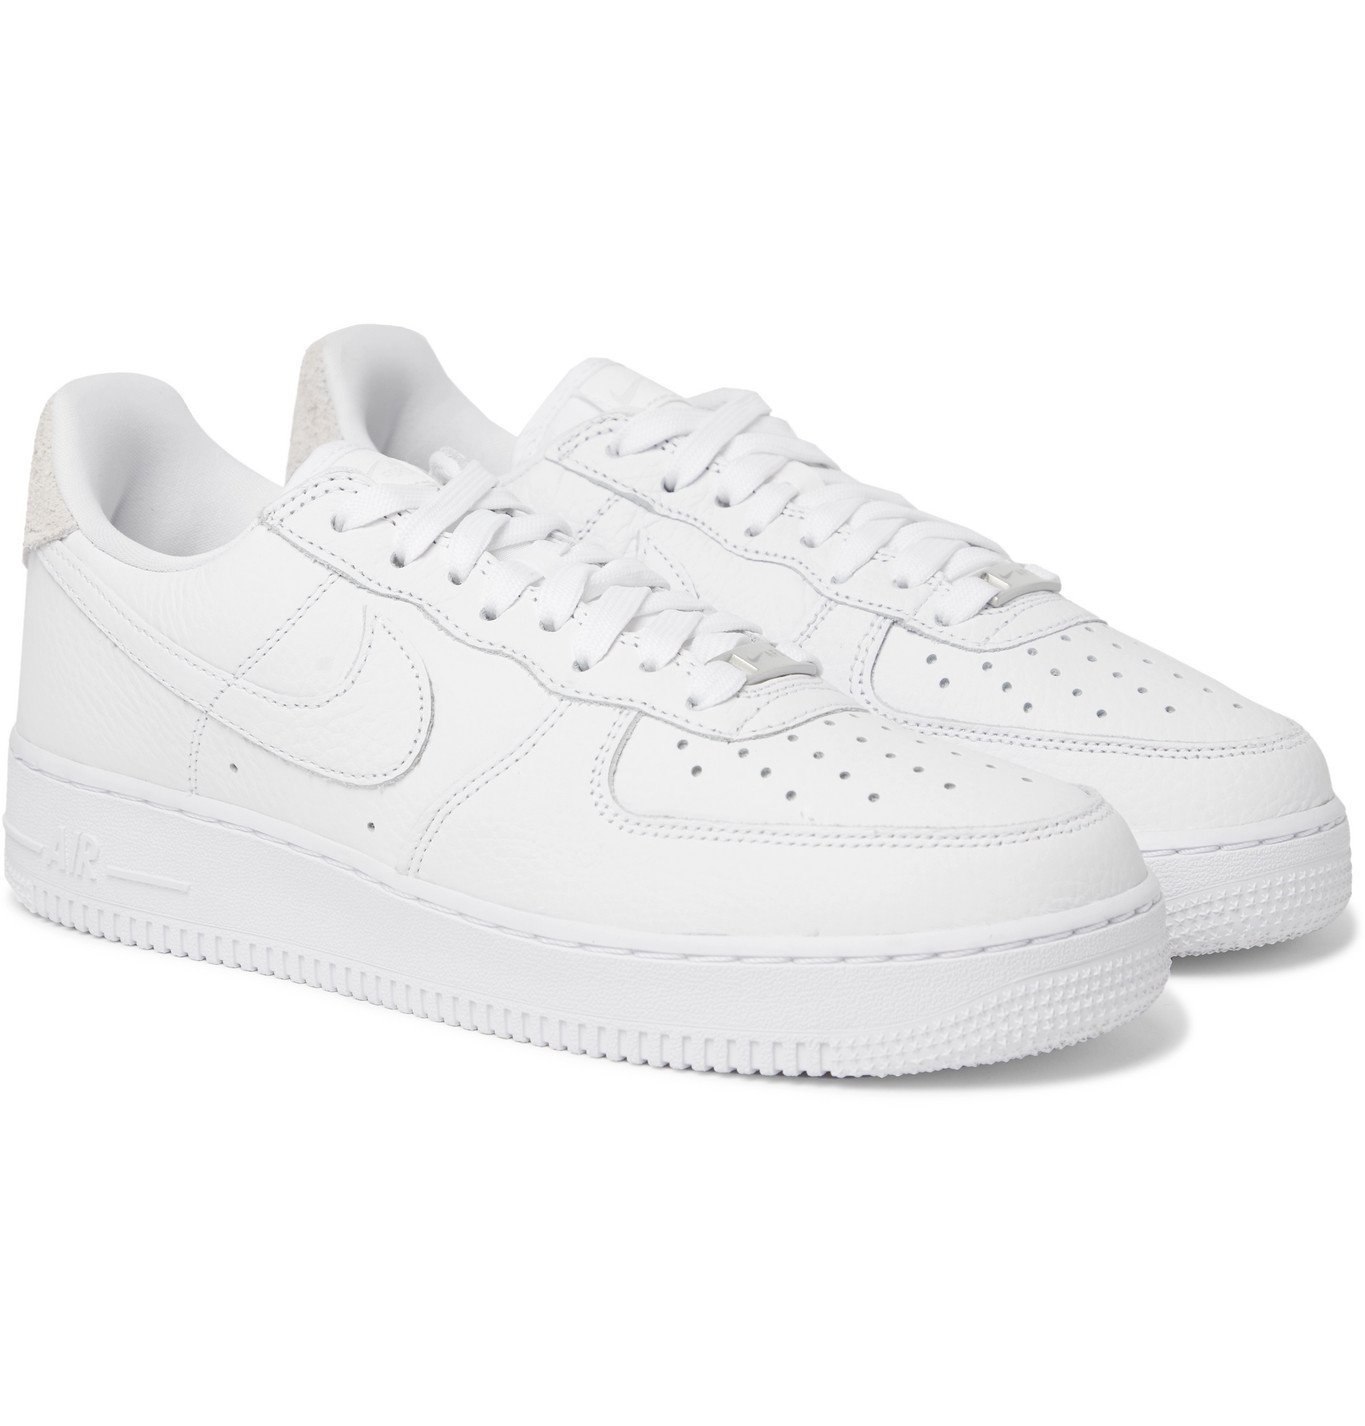 Nike - Air Force 1 '07 Craft Full-Grain Leather and Suede Sneakers ...